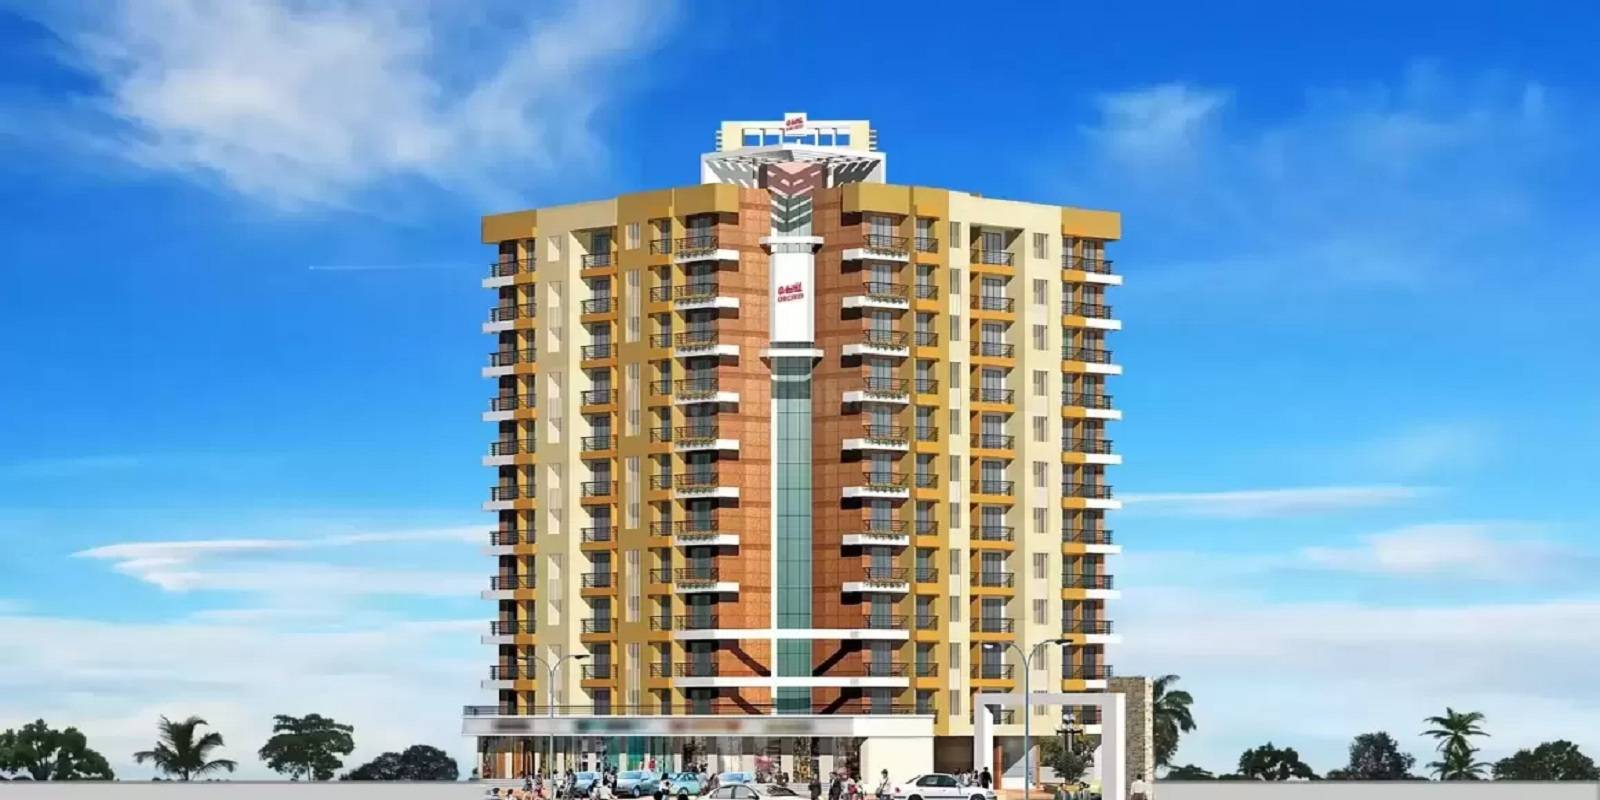 shree ostwal orchid building no 9 to 12 project large image2